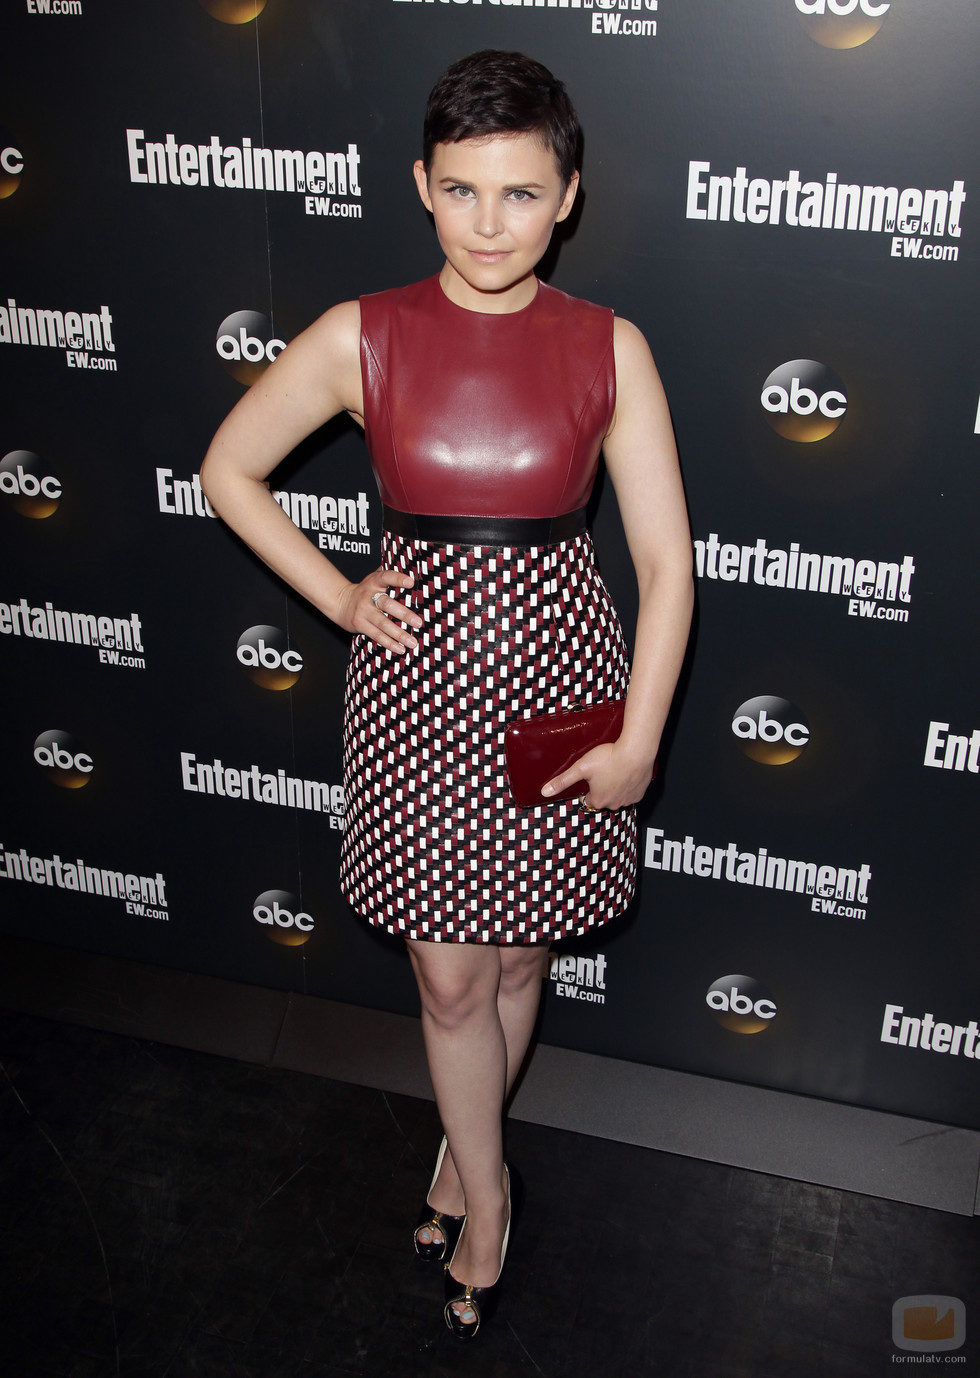 Ginnifer Goodwin de 'Once Upon a Time' en los Upfronts 2012 de ABC